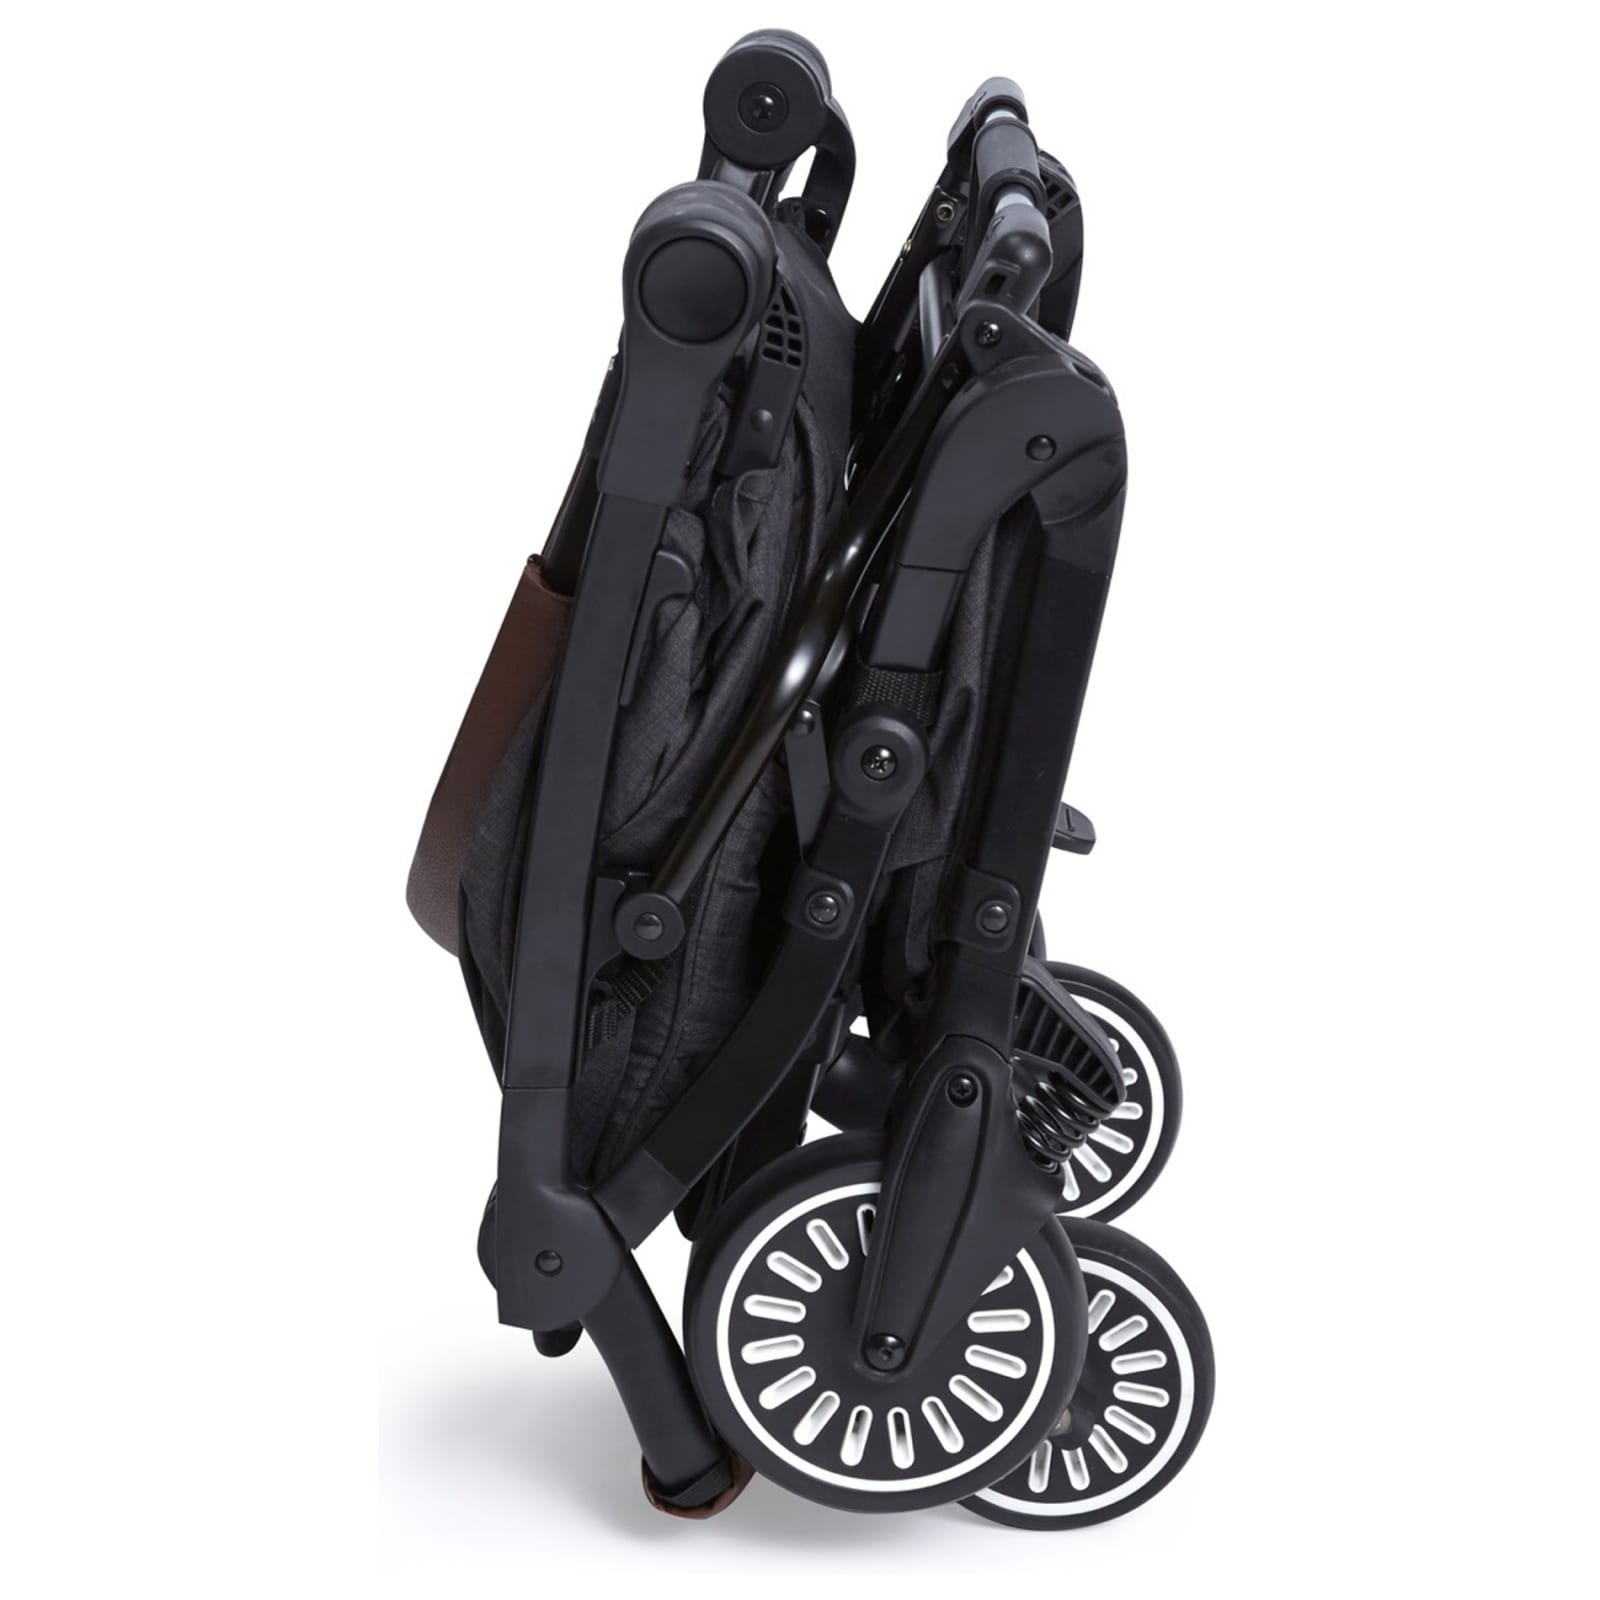 TUX Pushchair – Black product image